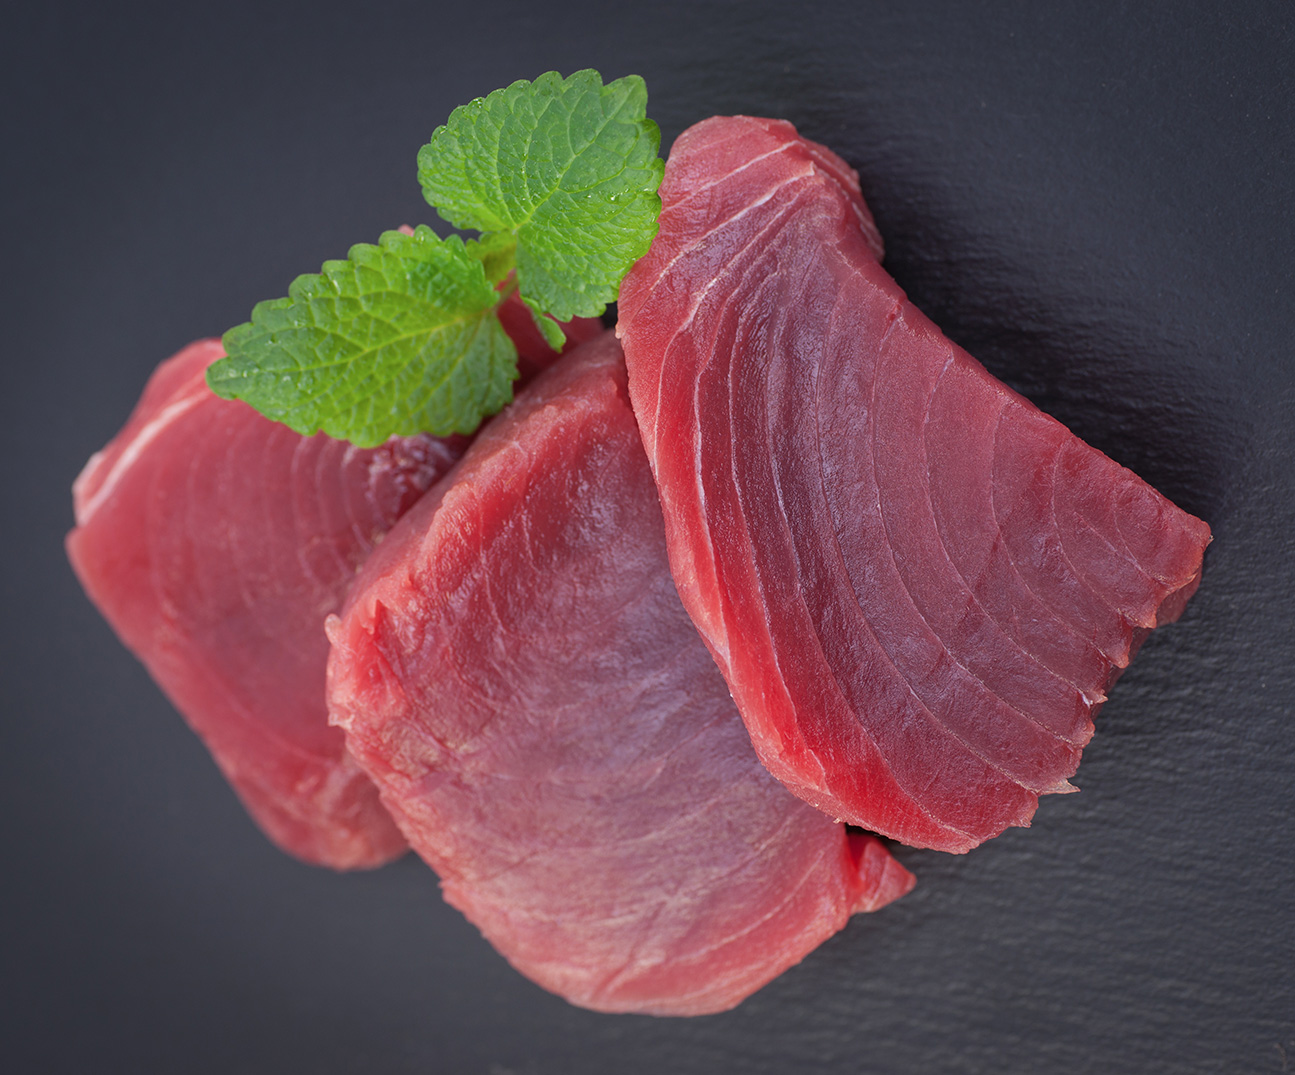 YELLOWFIN TUNA LOIN Image